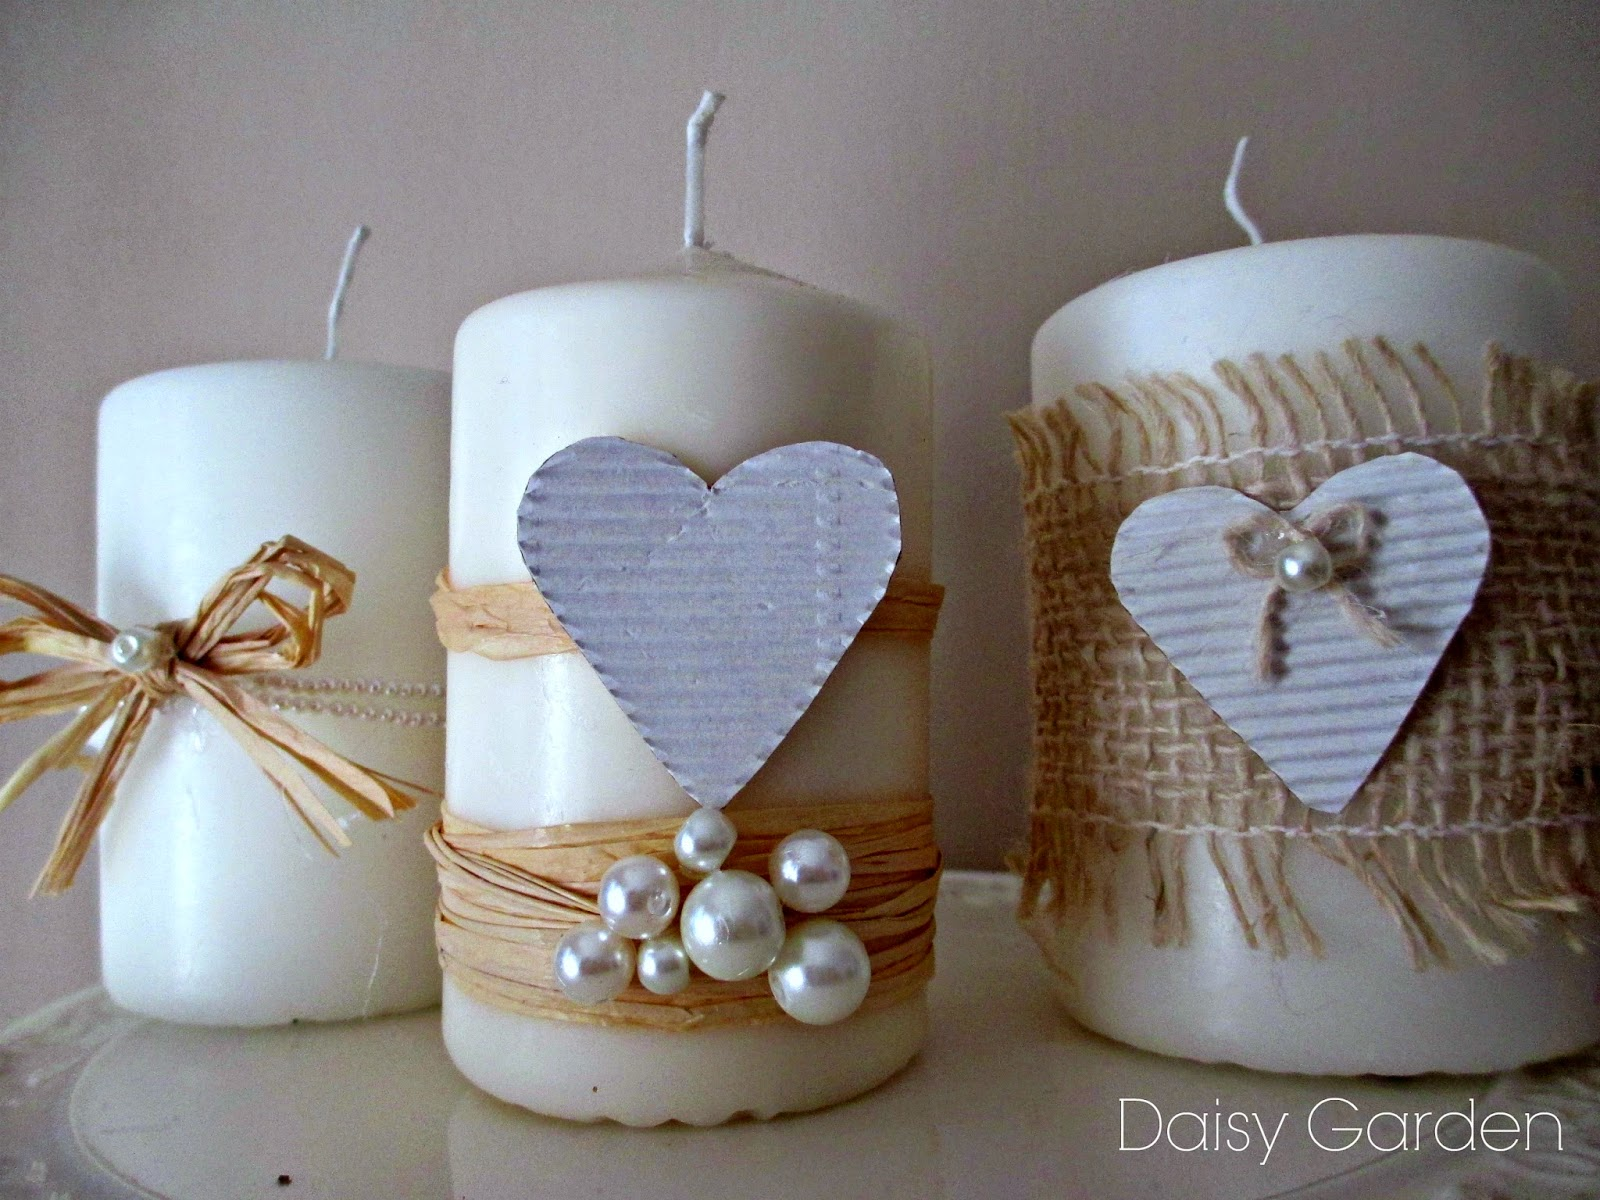 Daisy garden candele romantiche in stile shabby chic for Candele decorate